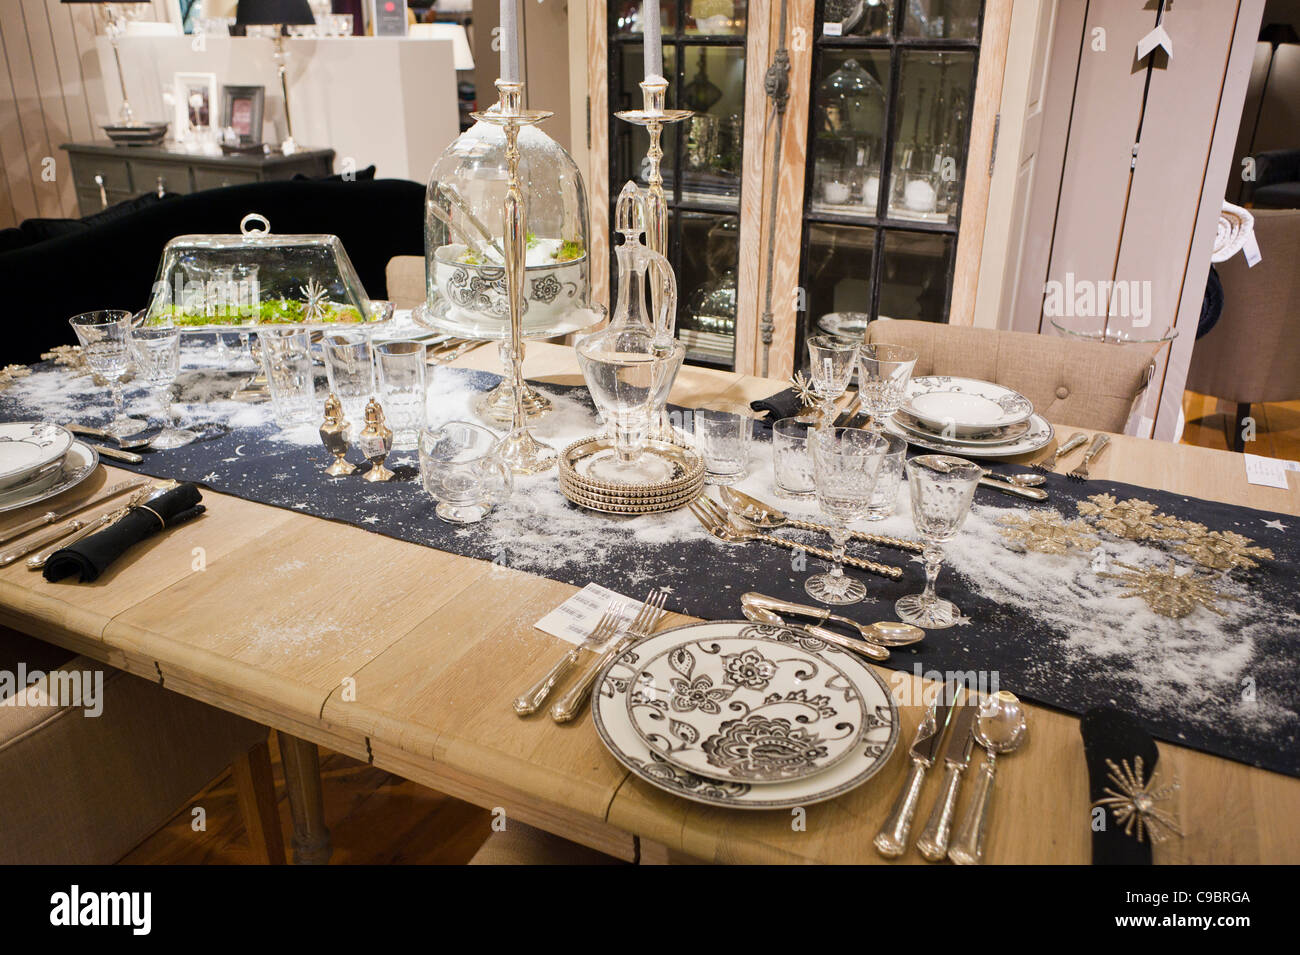 Paris France Galeries Lafayette Maison Housewares Department Store Christmas Displays Inside Holiday Table Settings